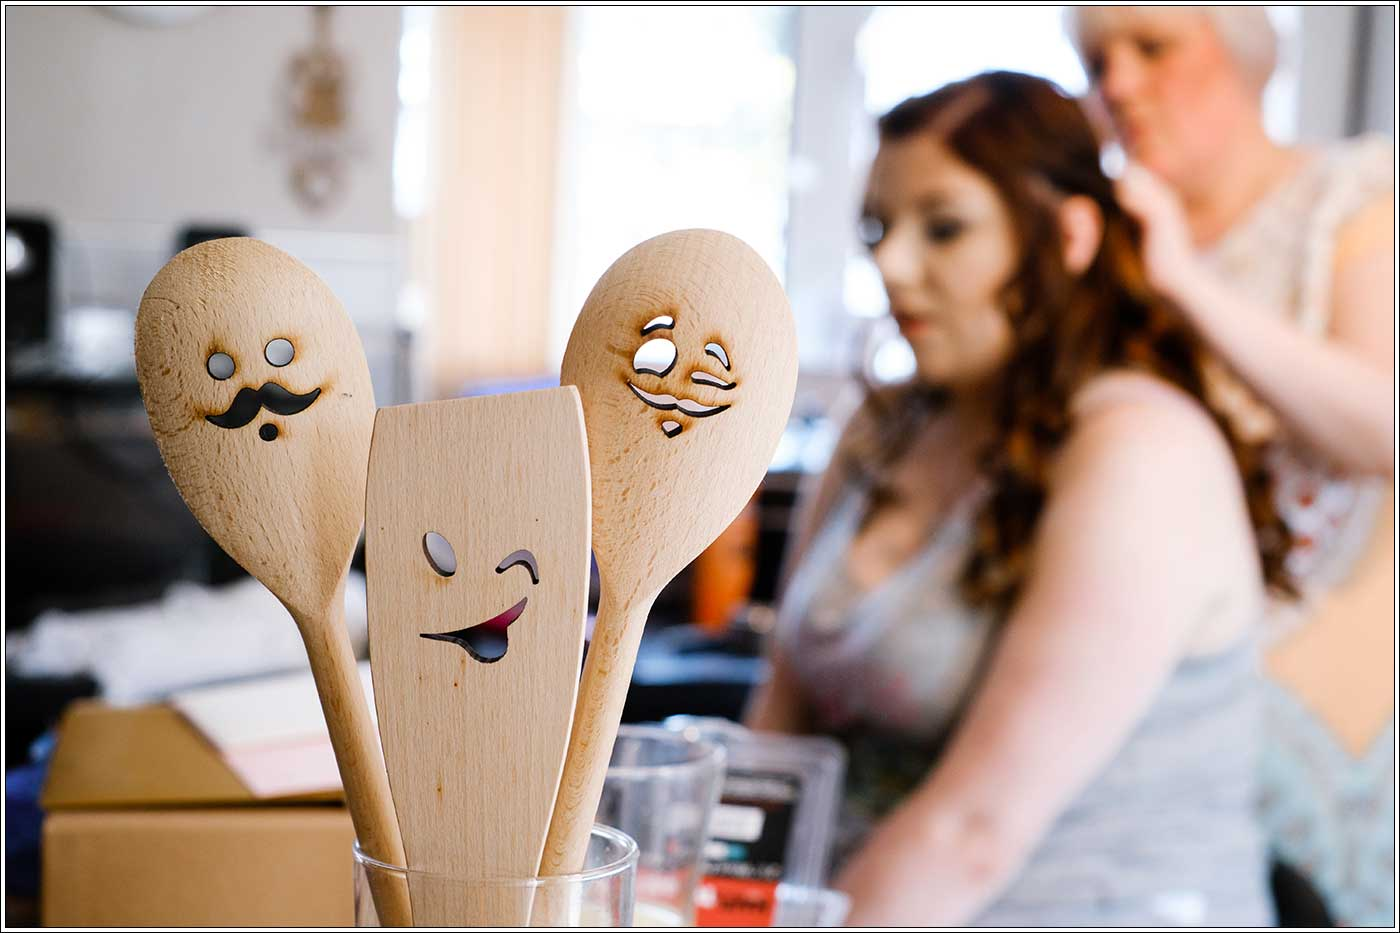 Bride getting ready in the morning with focus on wooden faces in sppons